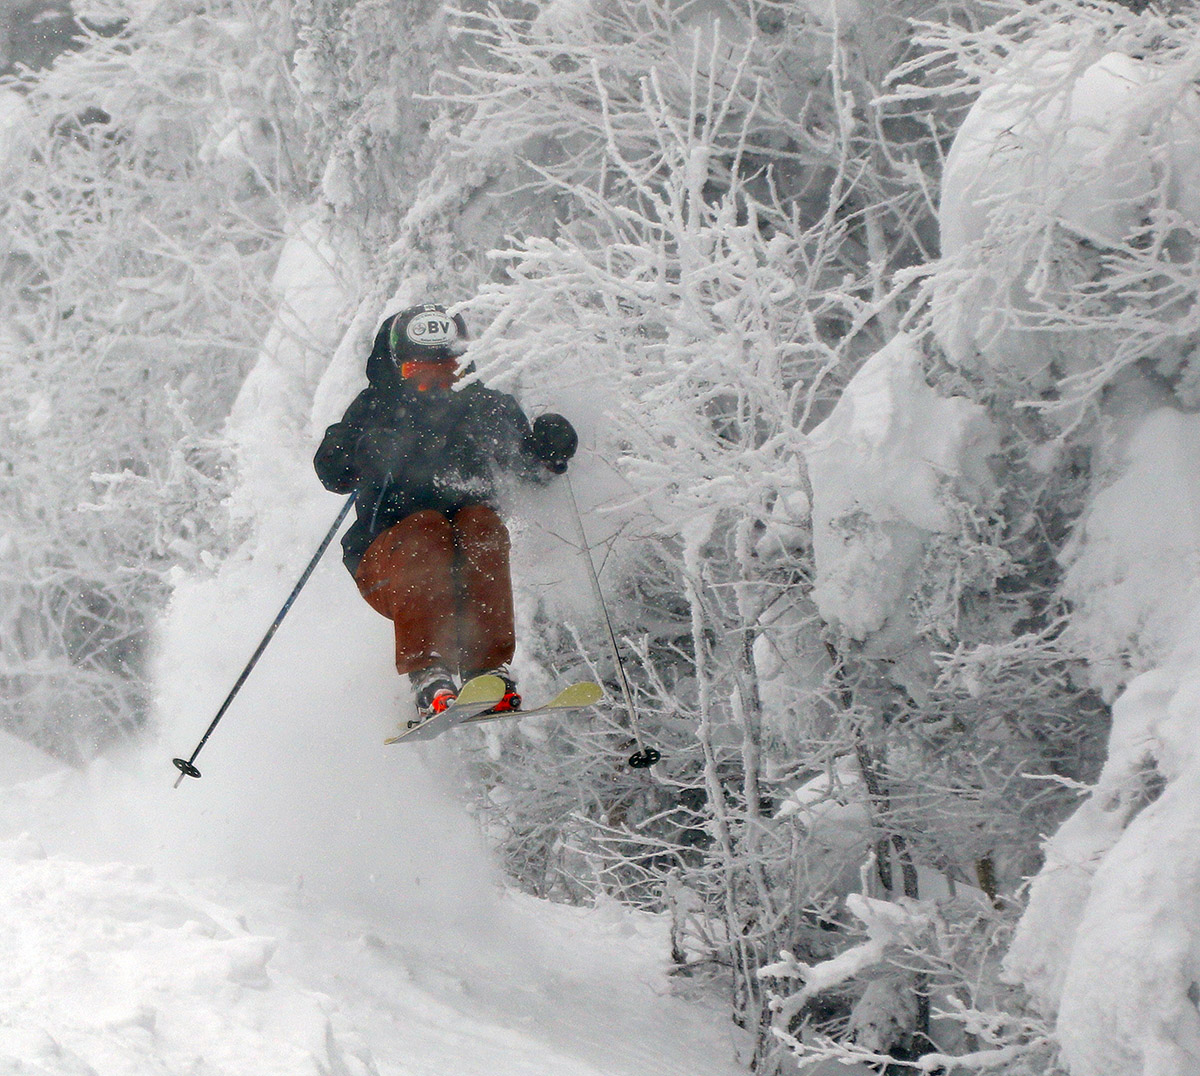 An image of Ty as he about to jump through some tree branches on the Hard Luck trail during Winter Storm Malcolm at Bolton Valley Ski Resort in Vermont